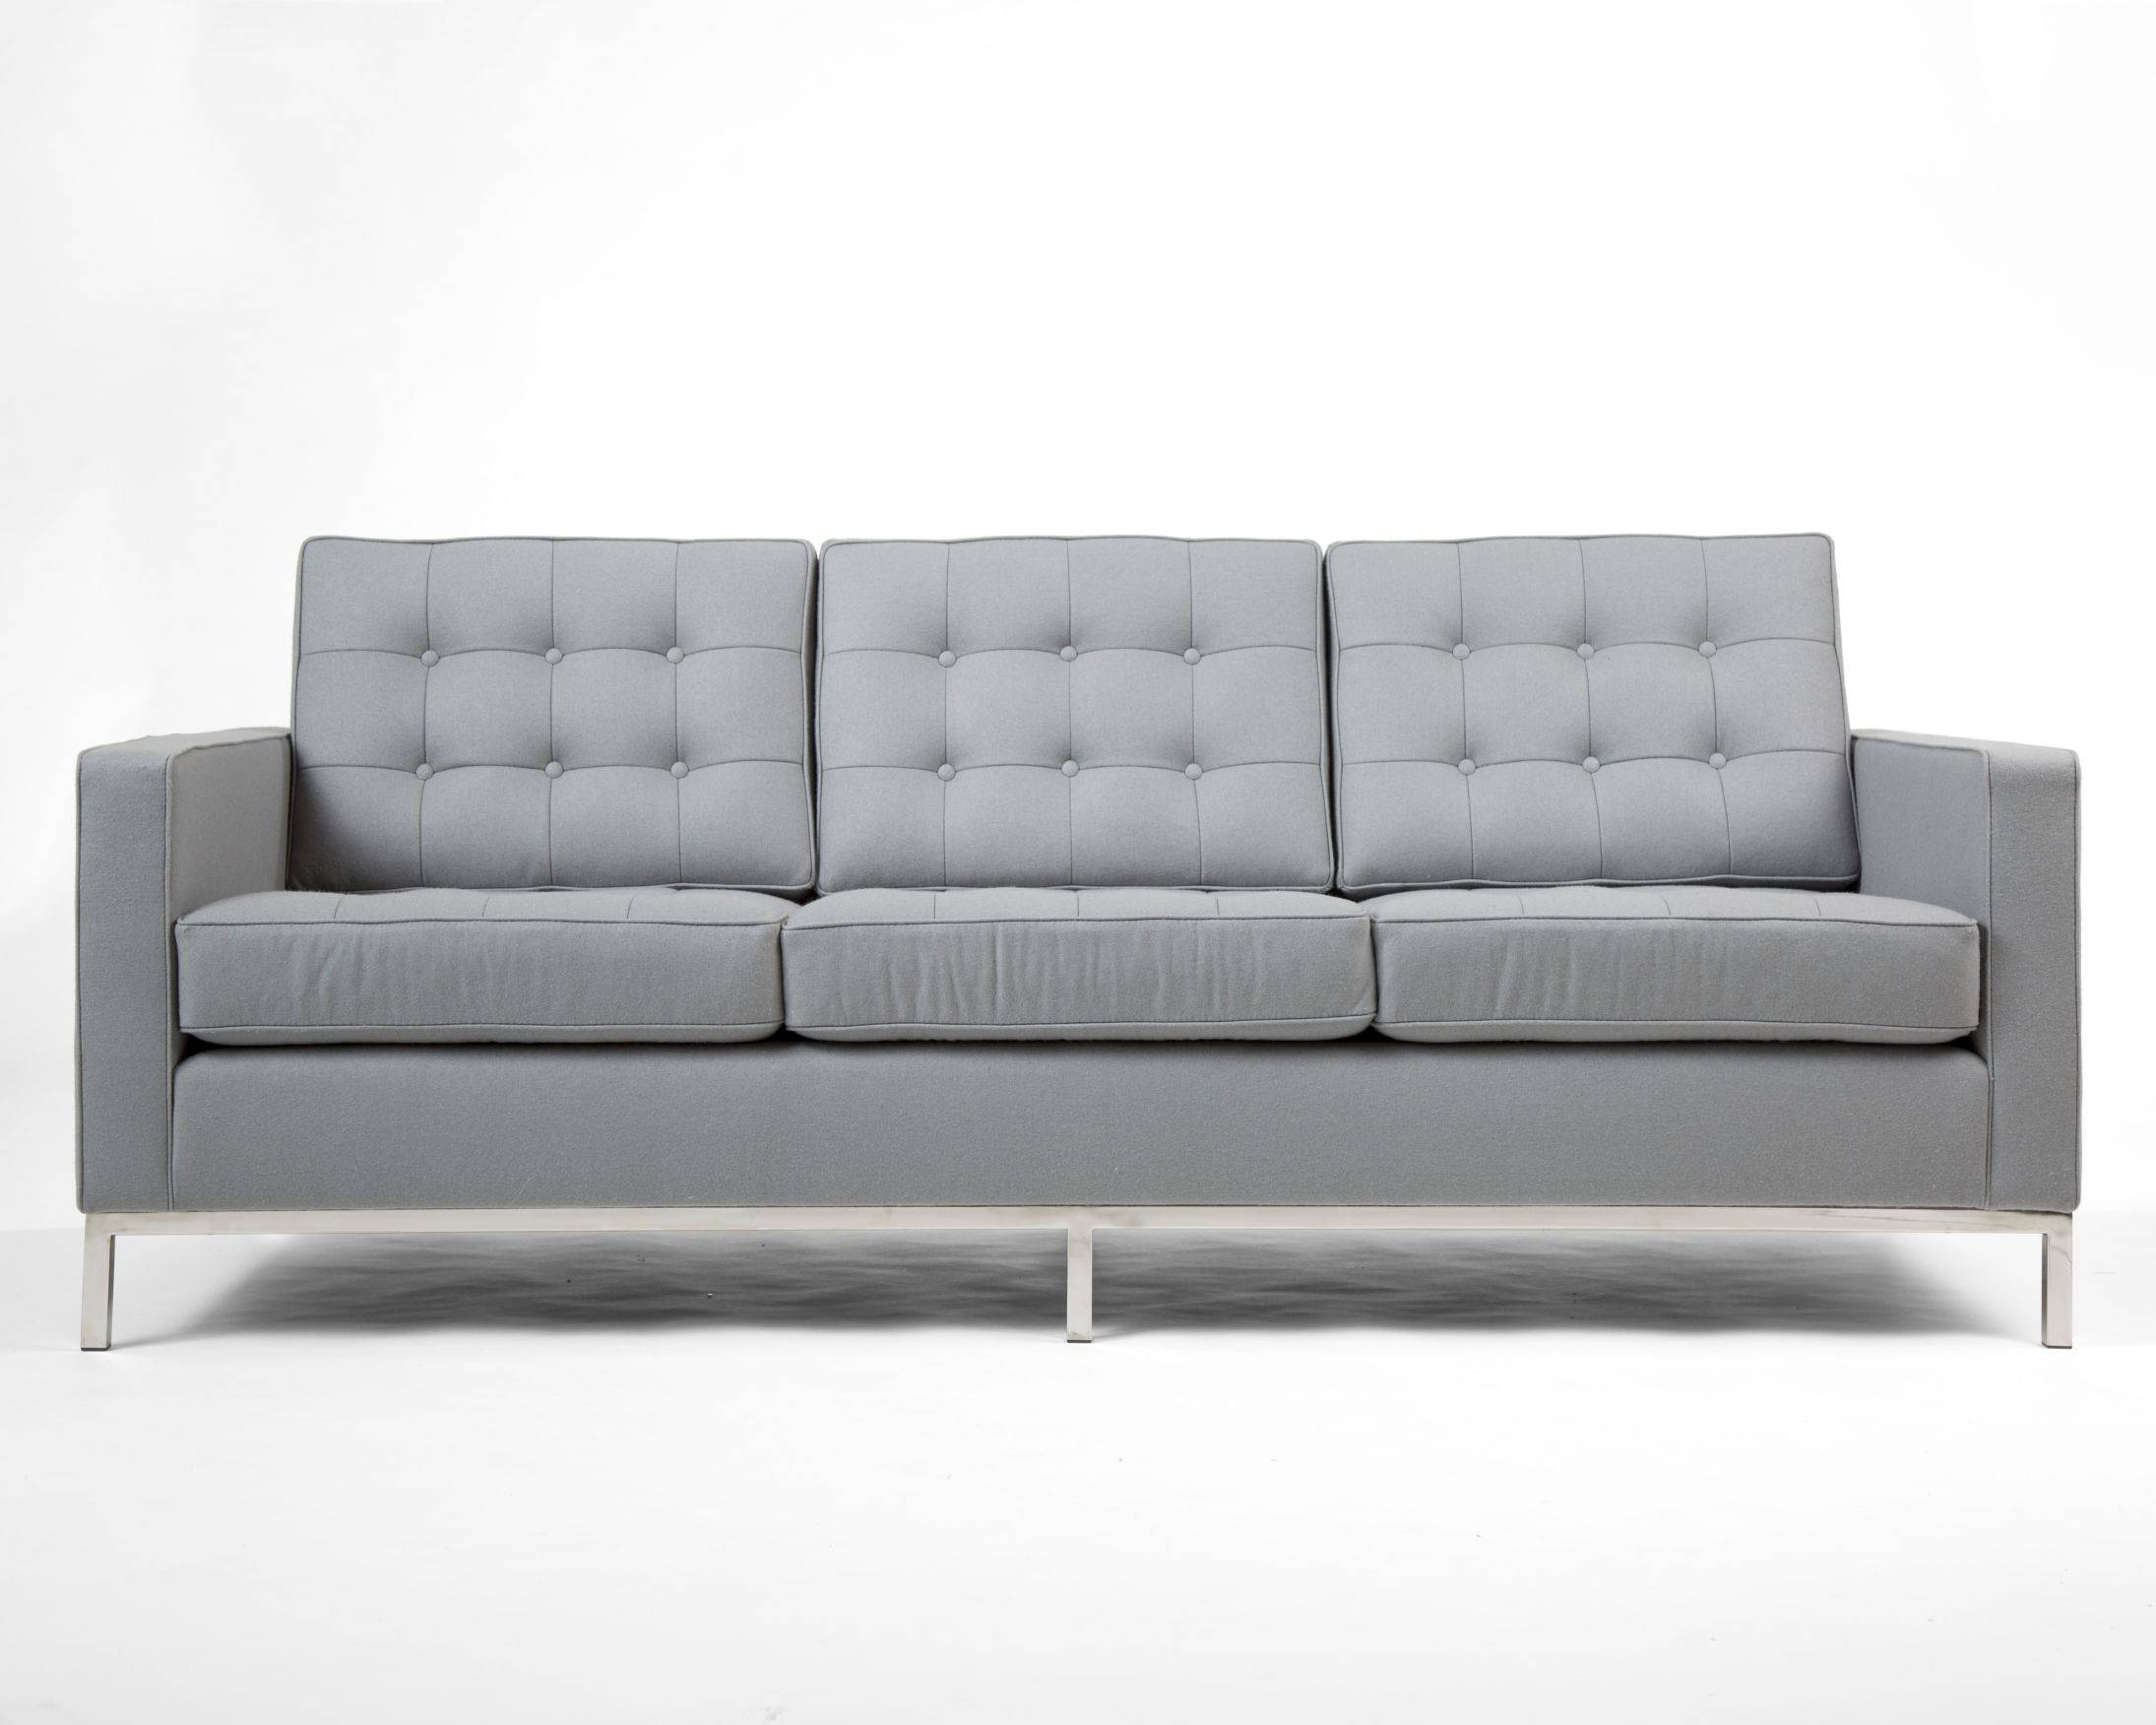 Florence Sofa | Reproduction | Mid Century Modern regarding Florence Large Sofas (Image 10 of 30)